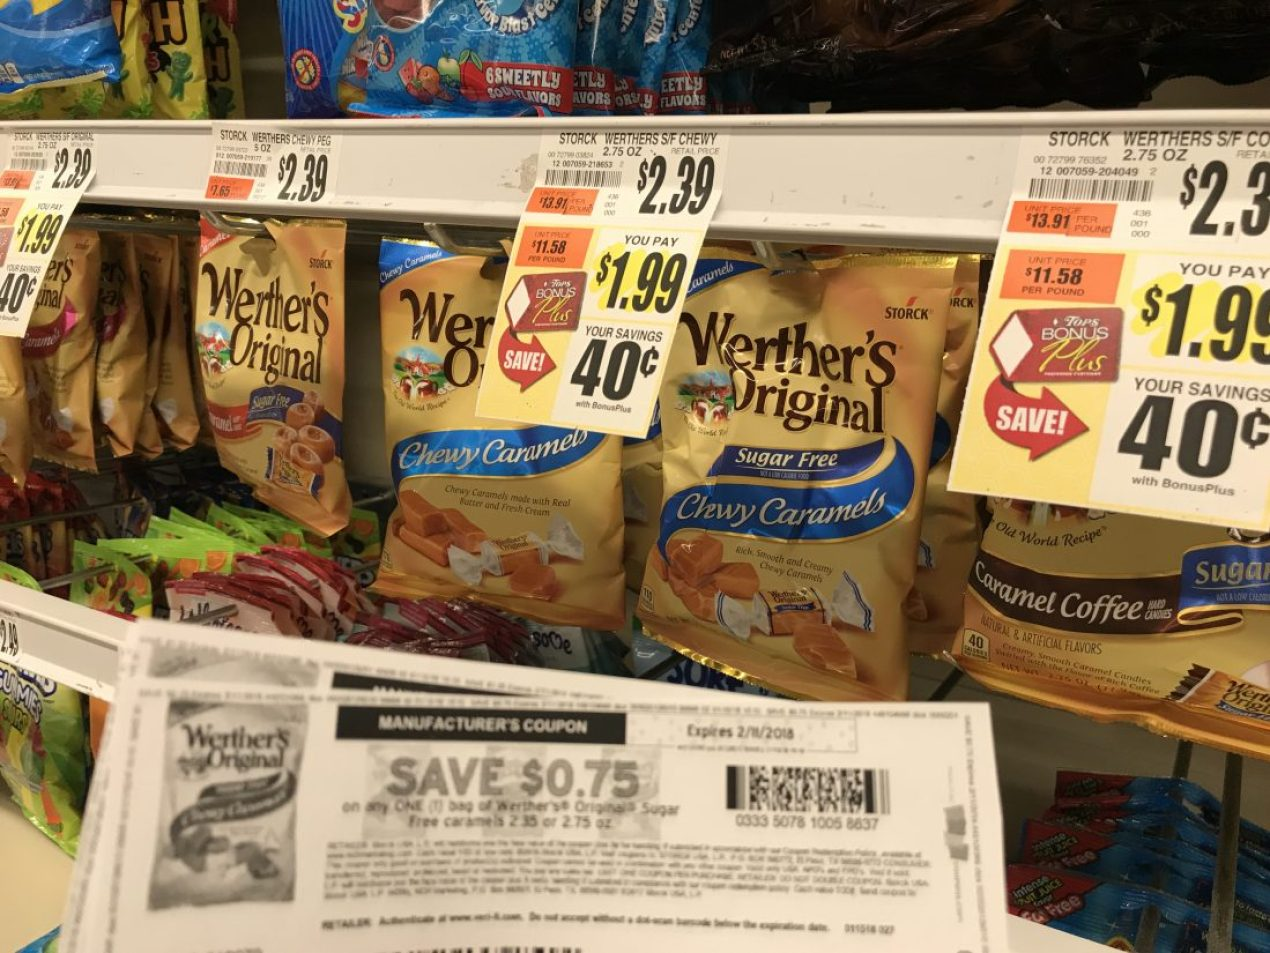 Werther's Caramels At Tops Markets (2)